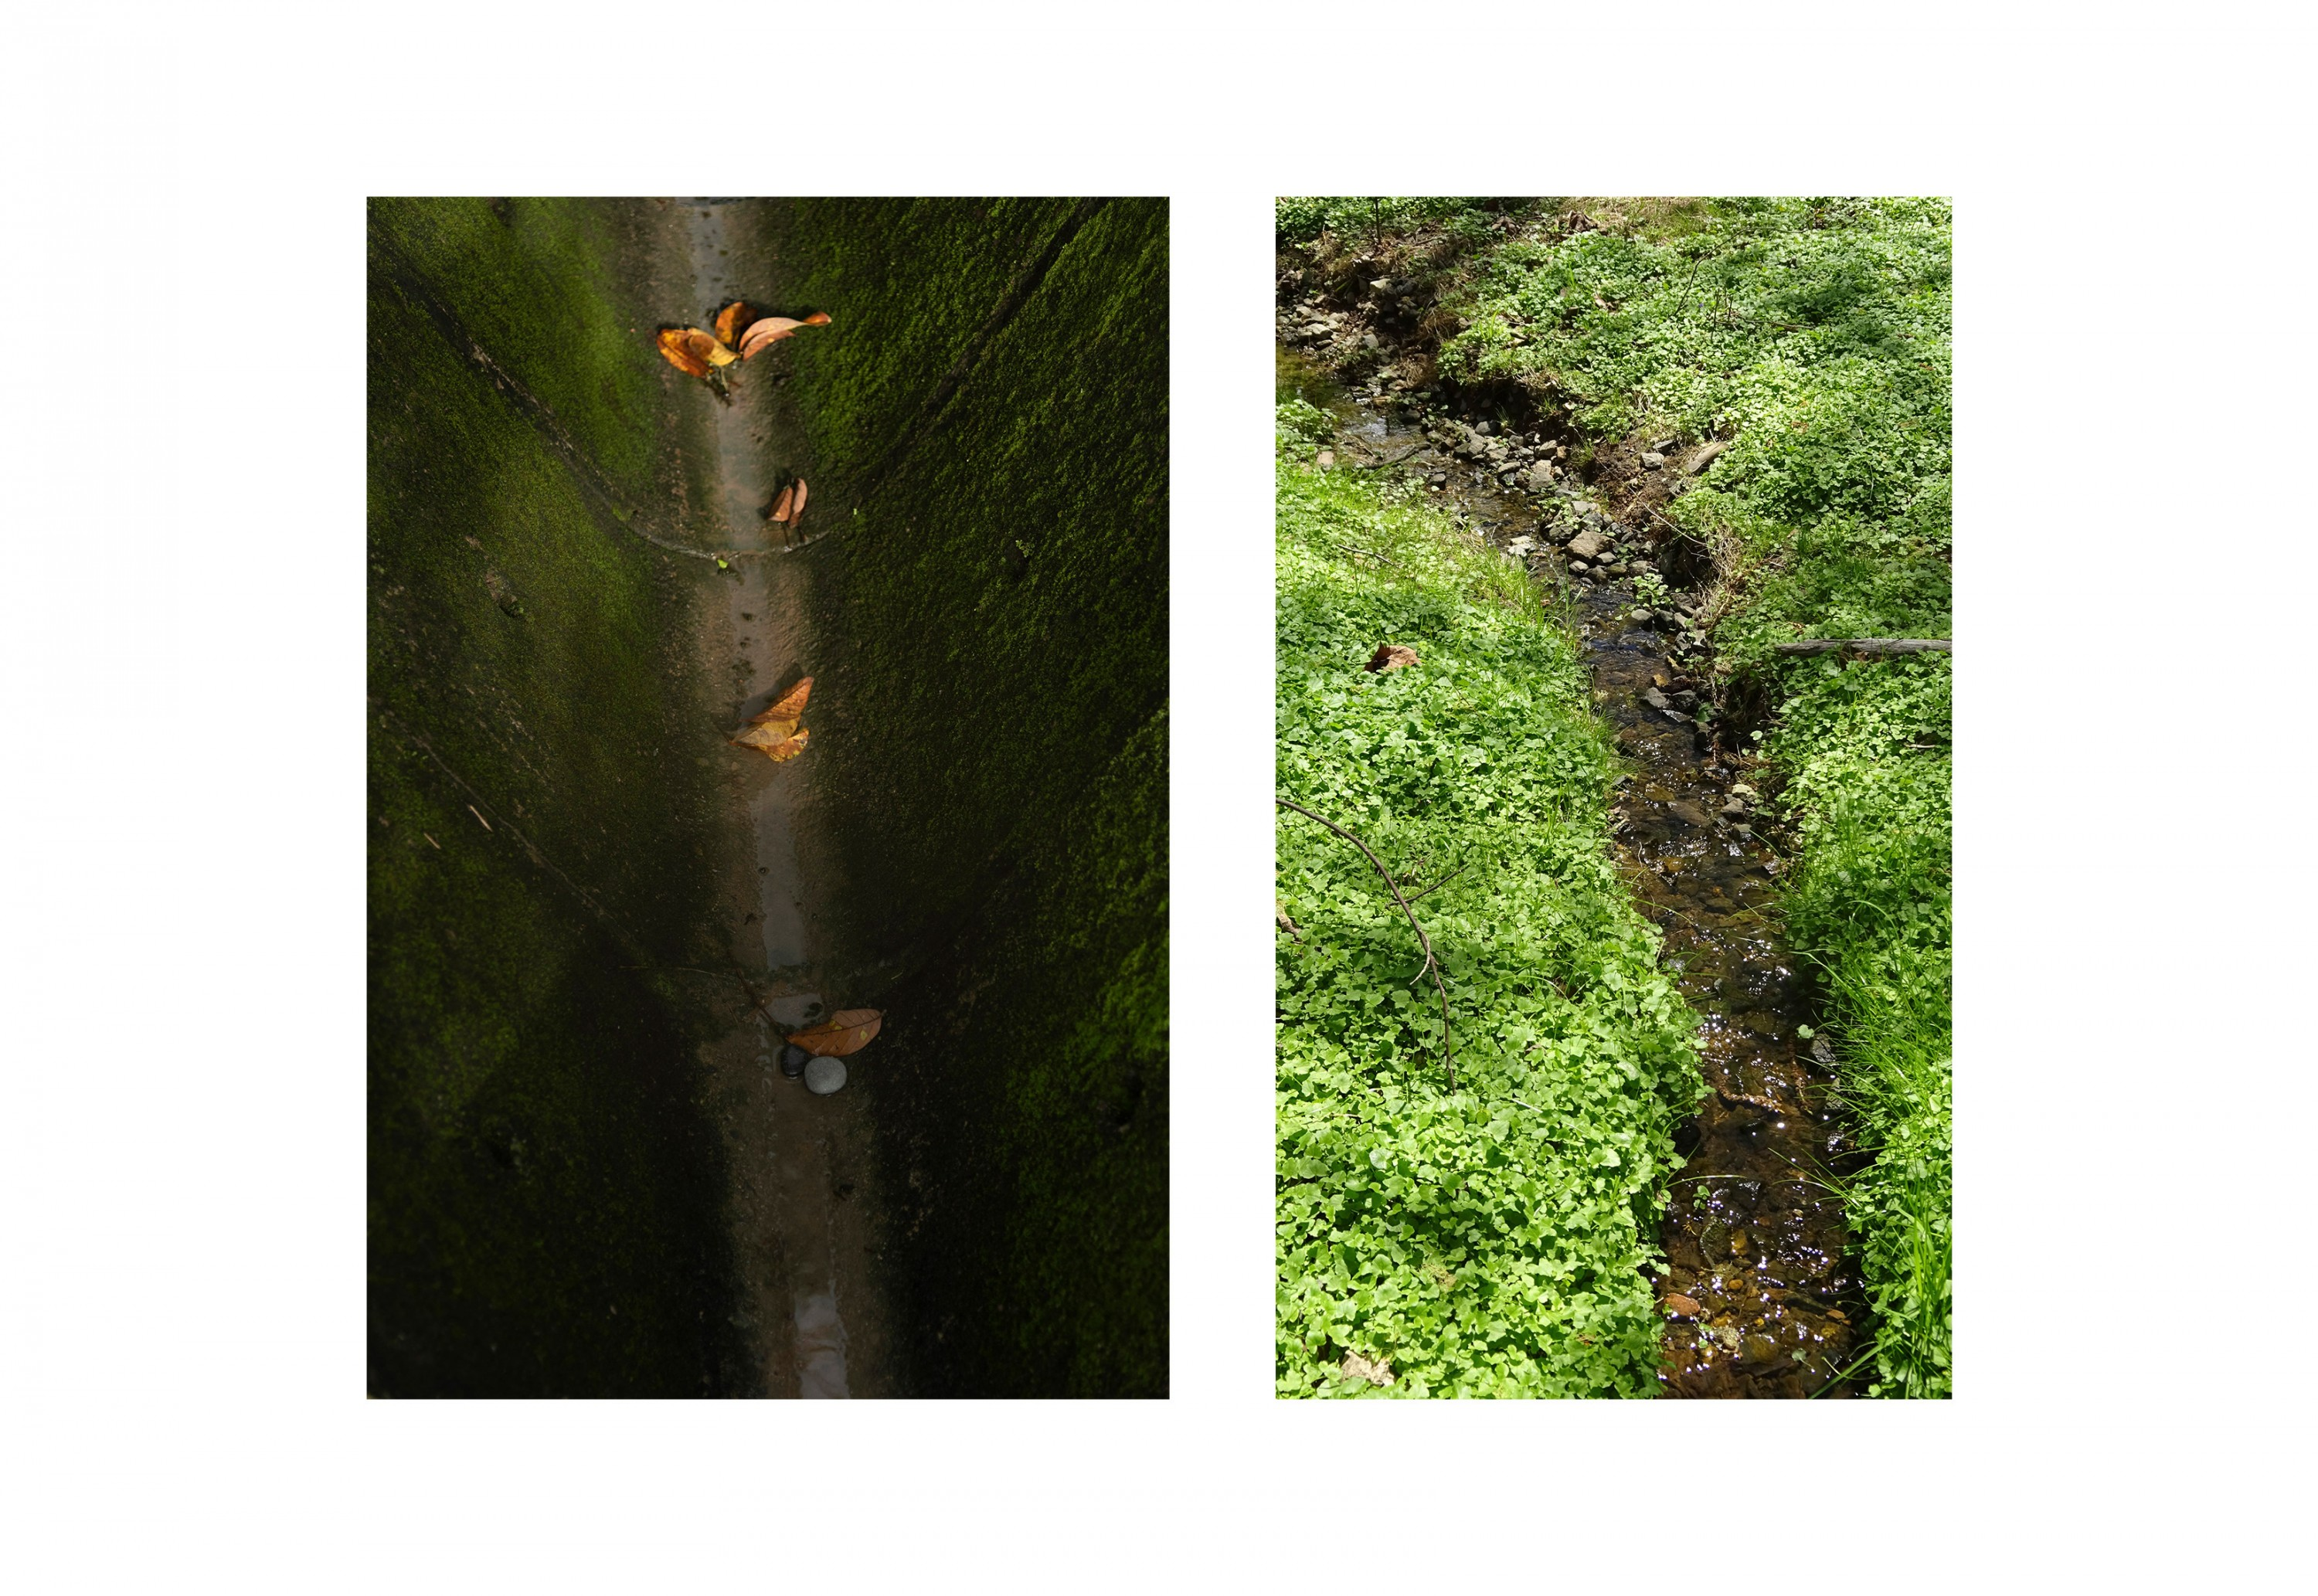 Two photographs next to each other, one on the left is a green gutter with leaves the one of the right is a stream with plants around it